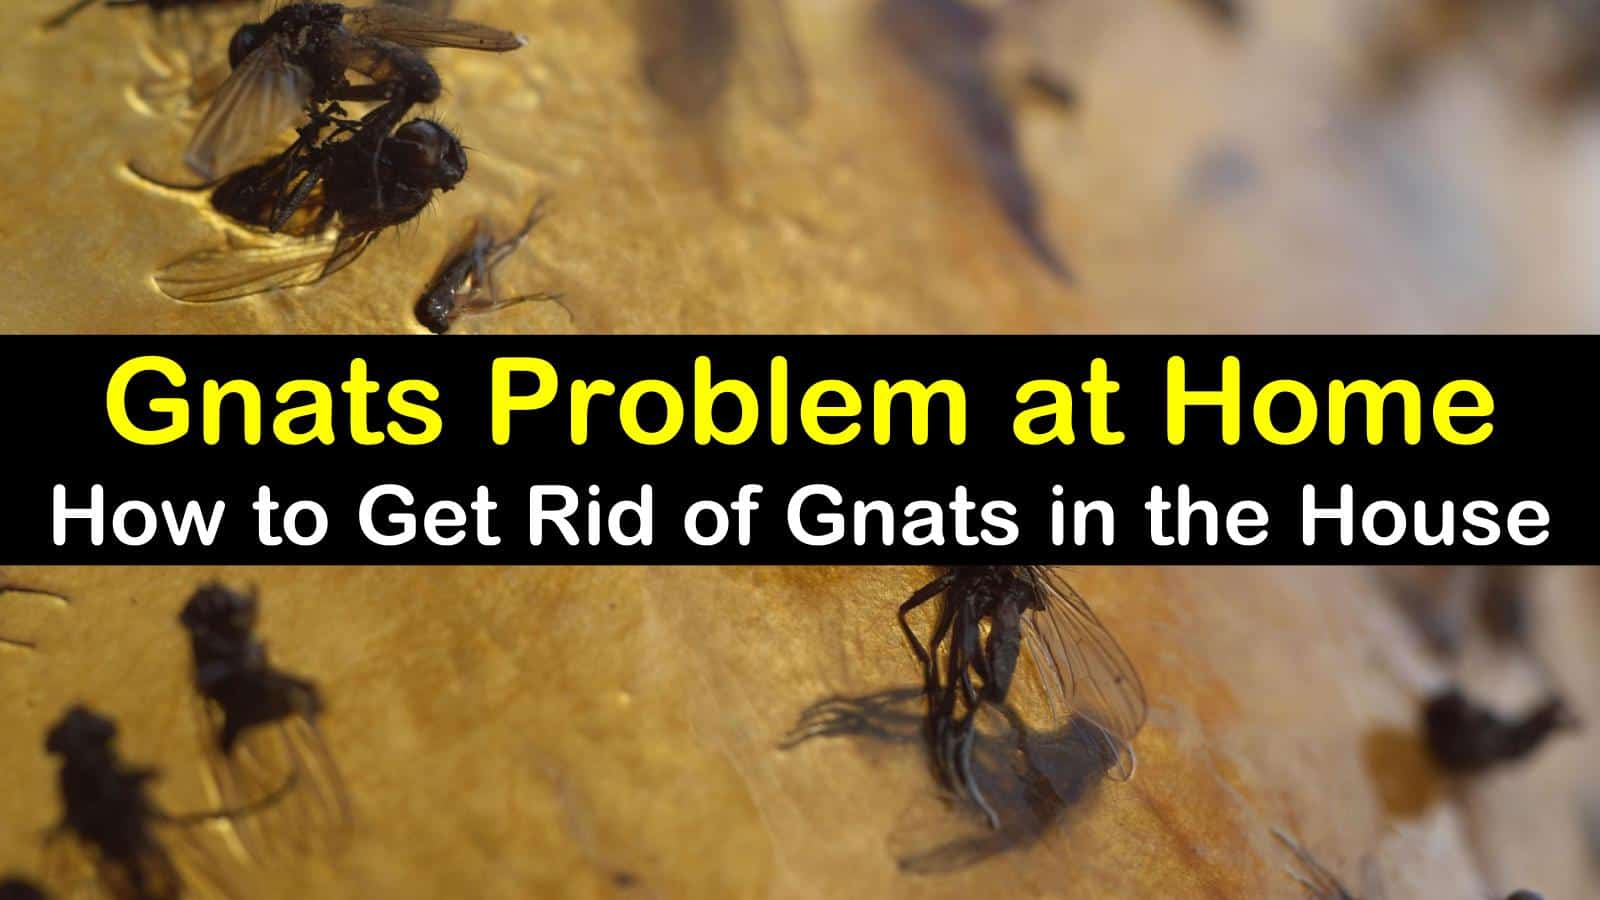 titleimg1 how to get rid of gnats in house